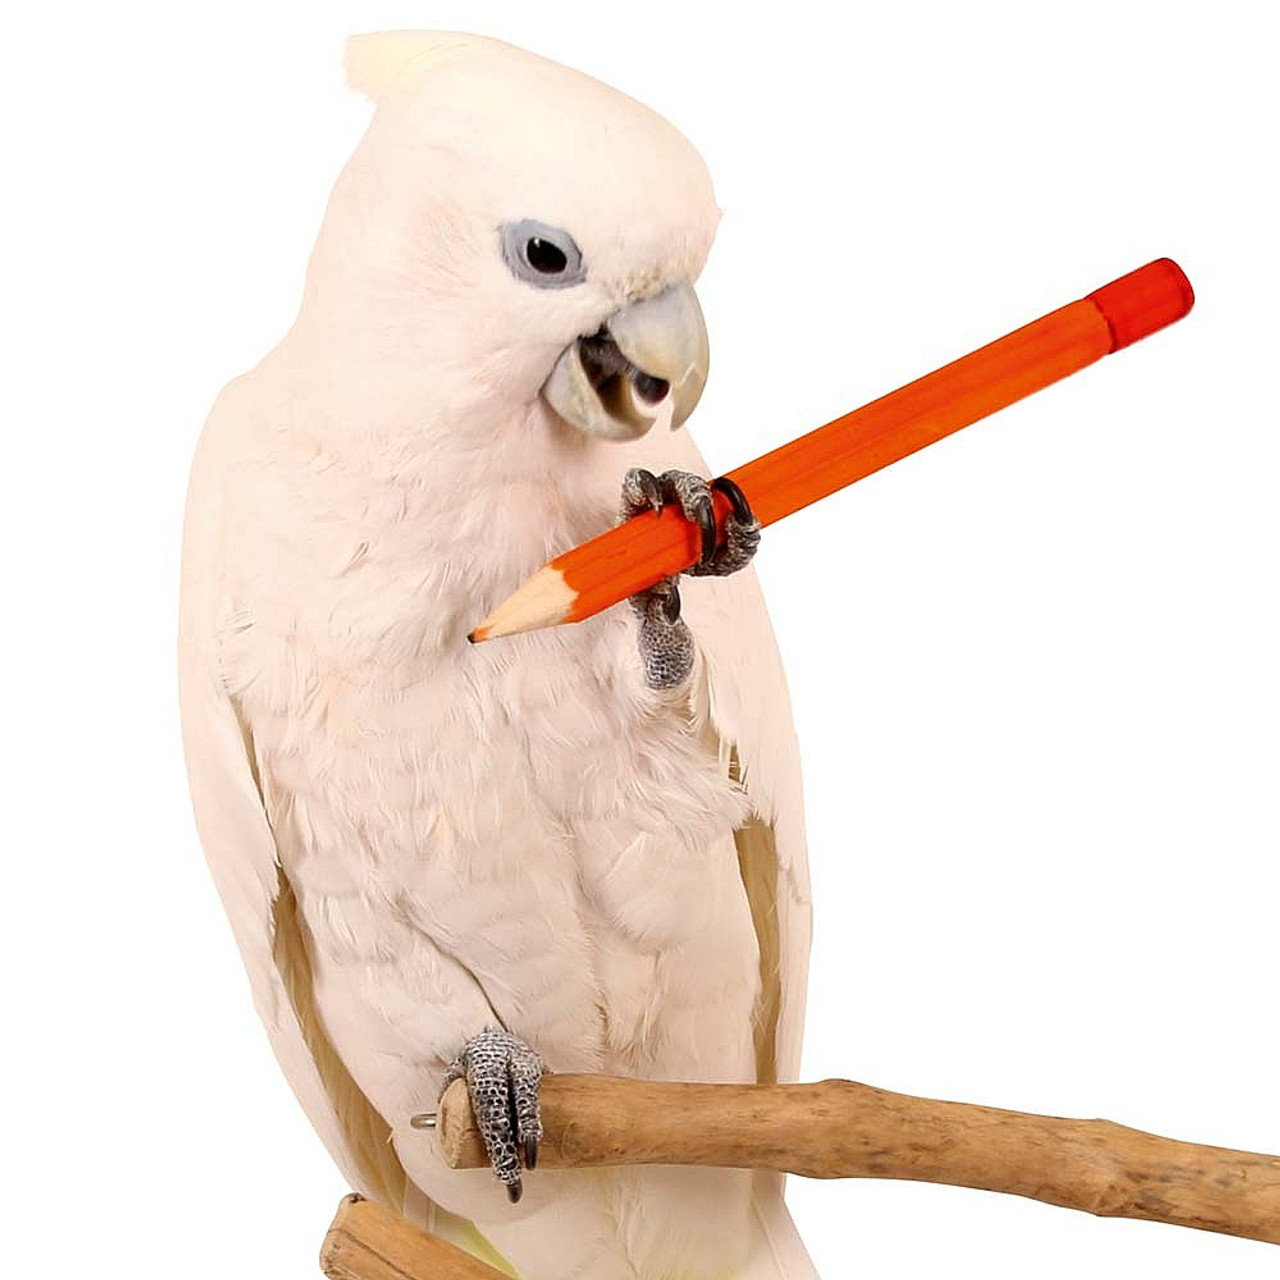 Small Toy Parrots : Buy parrot pencil foot toy small from essentials